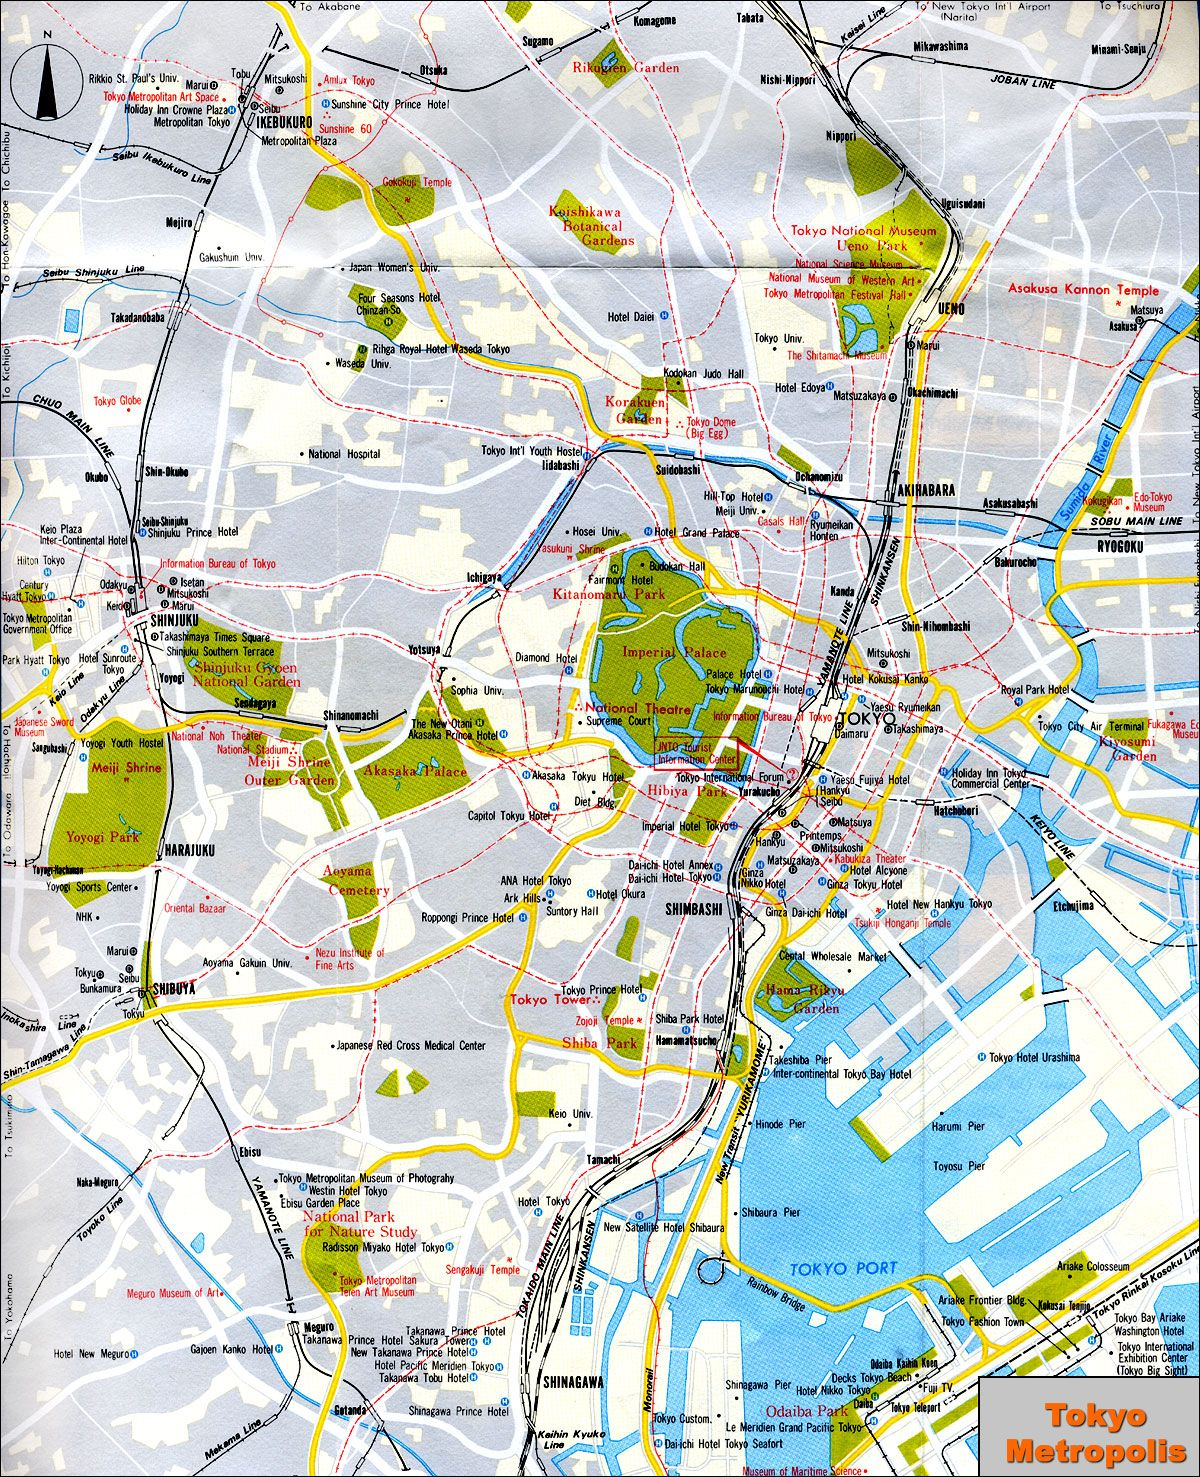 Tokyo Japan Tourist Map Tokyo Japan Mappery Maps Pinterest - Japan map center